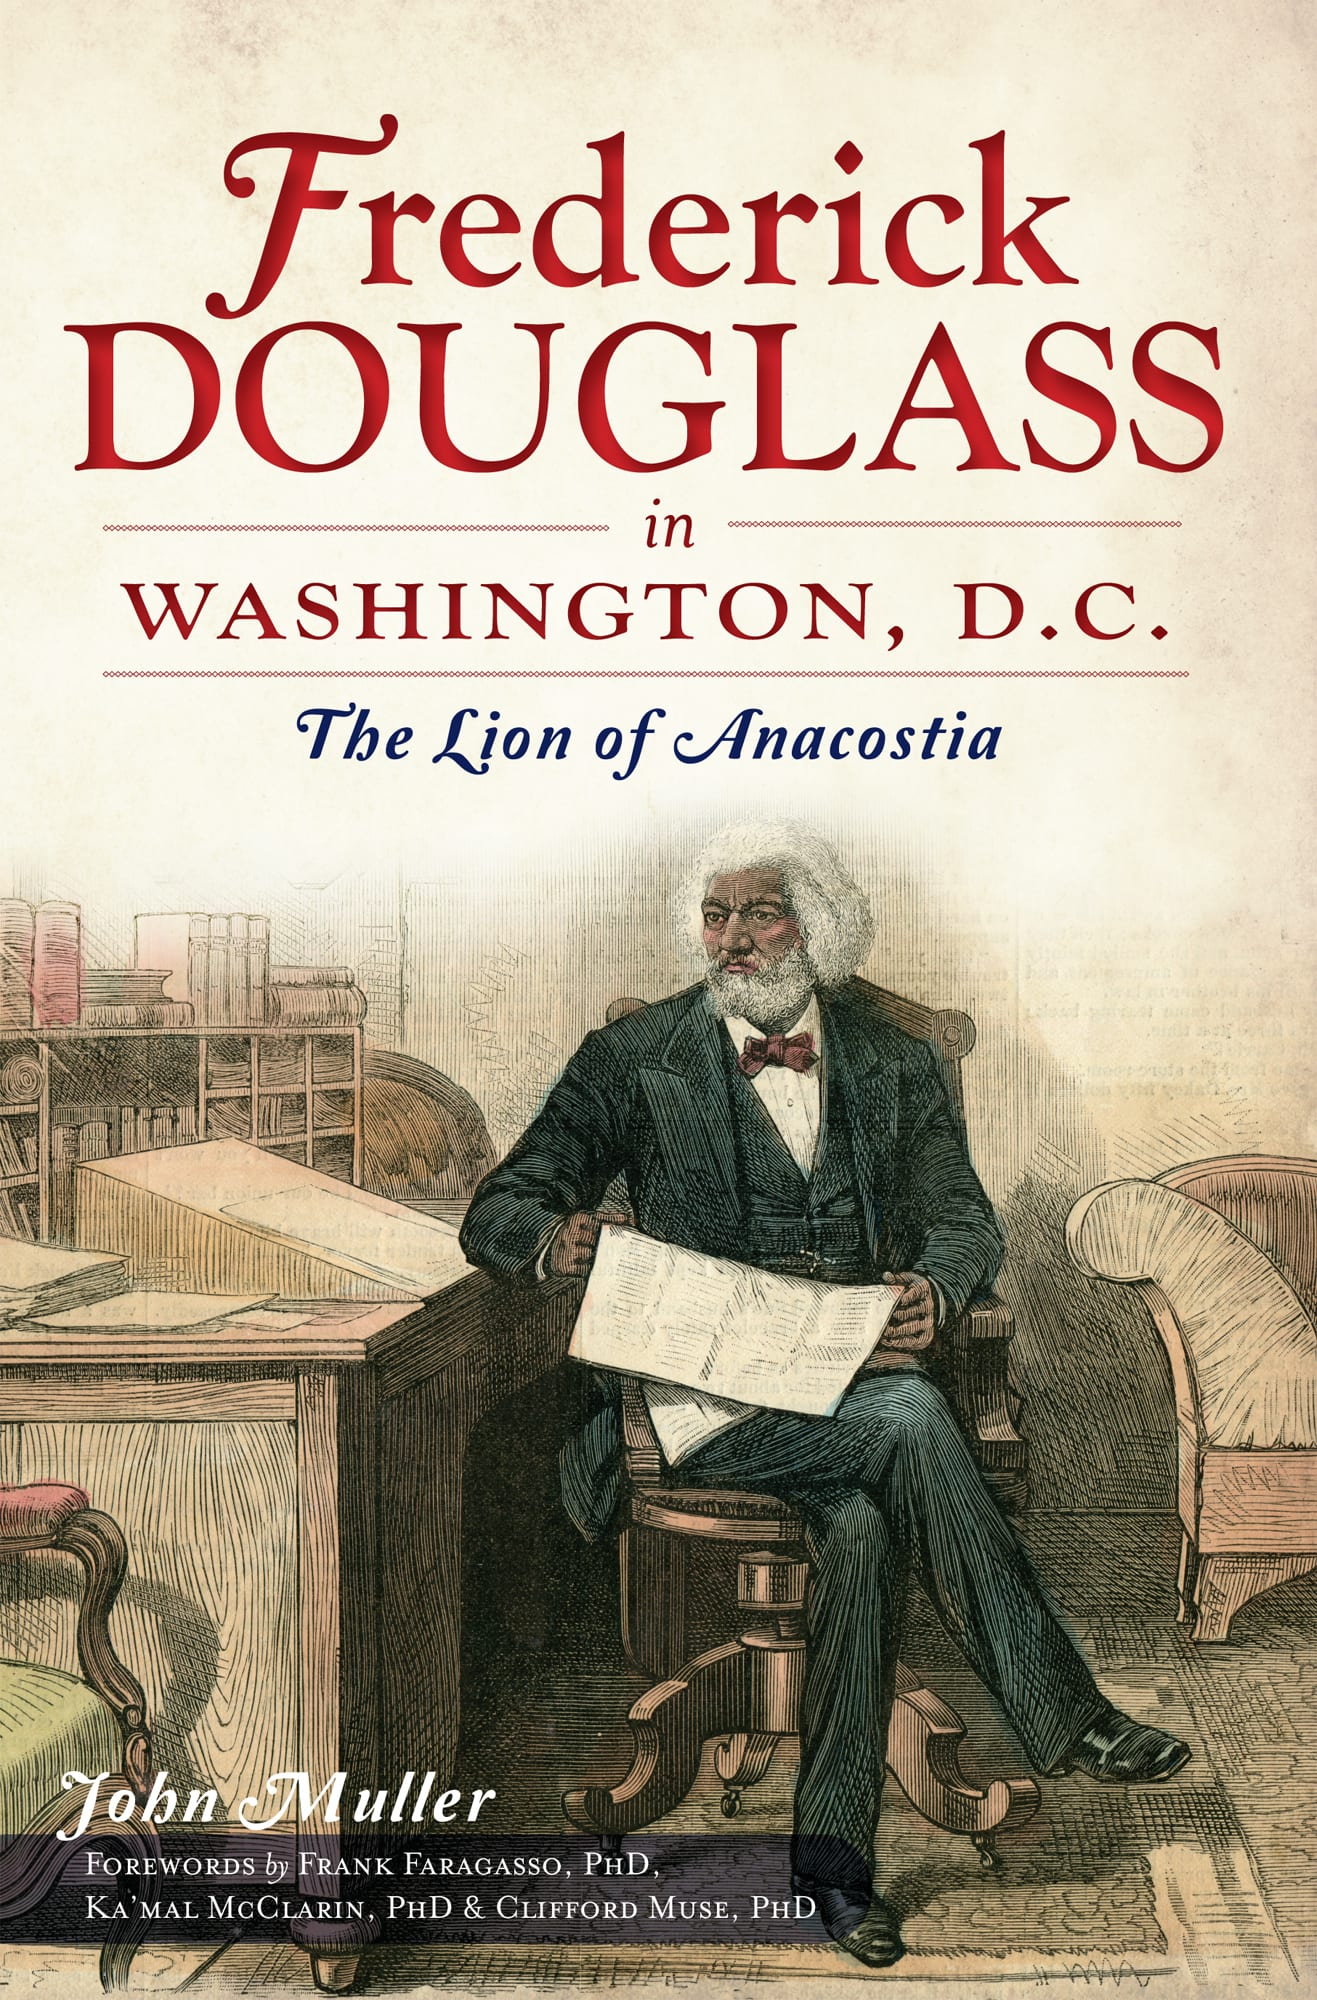 Frederick Douglass in Washington, D.C. by John Muller